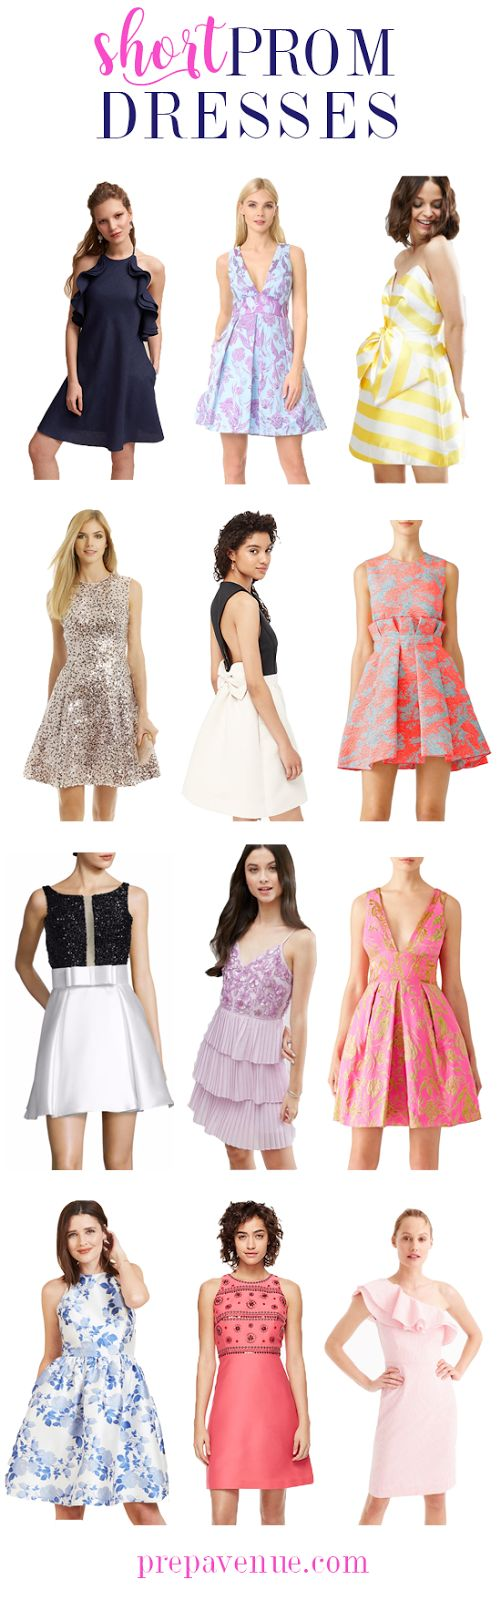 Preppy prom Dresses! // www.prepavenue.com